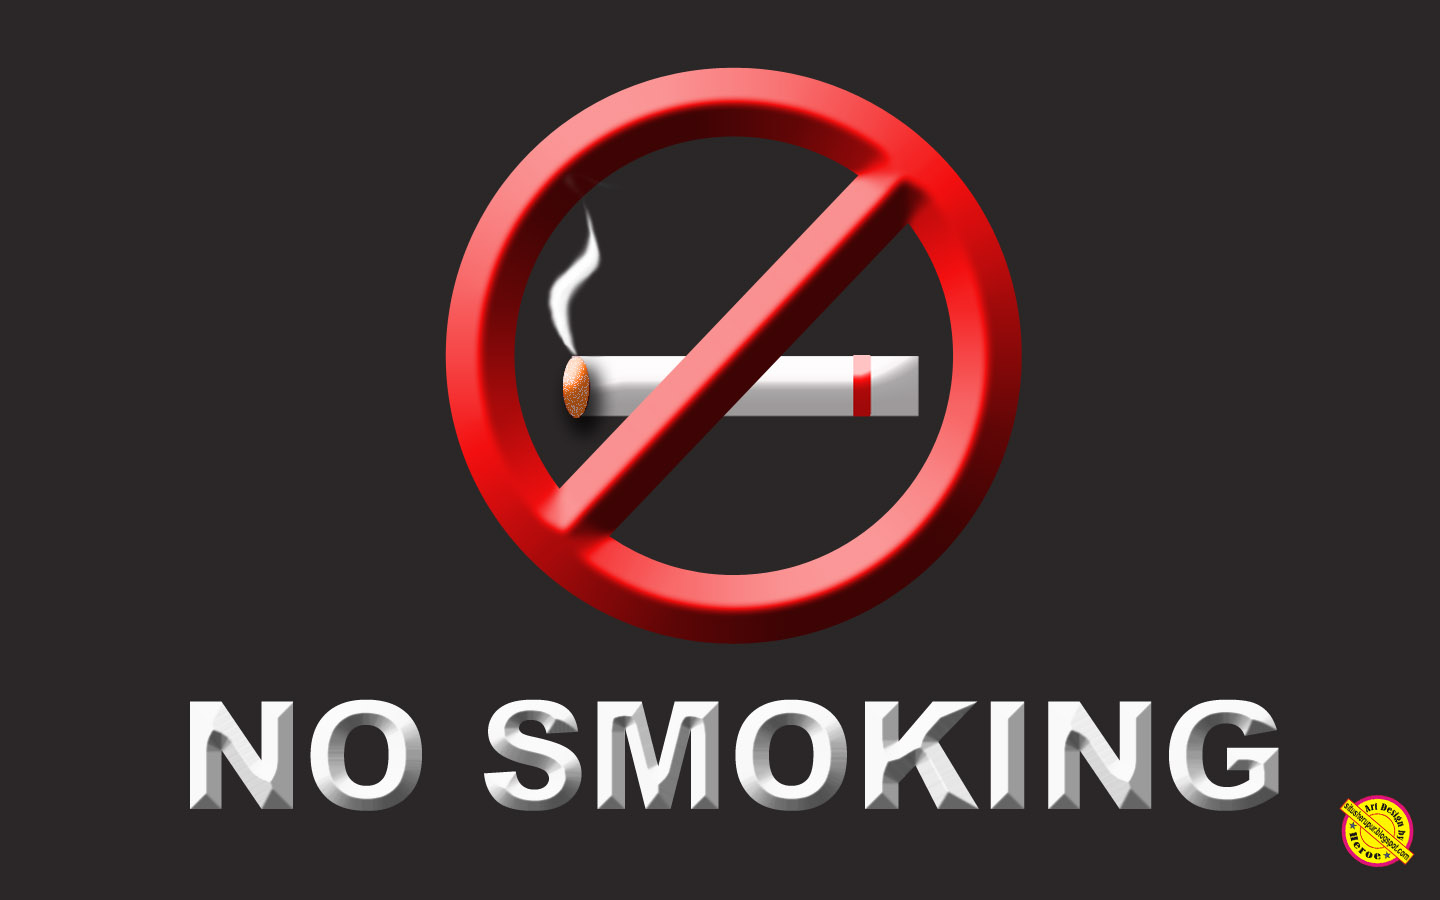 No Smoking Wallpaper Wallpapersafari